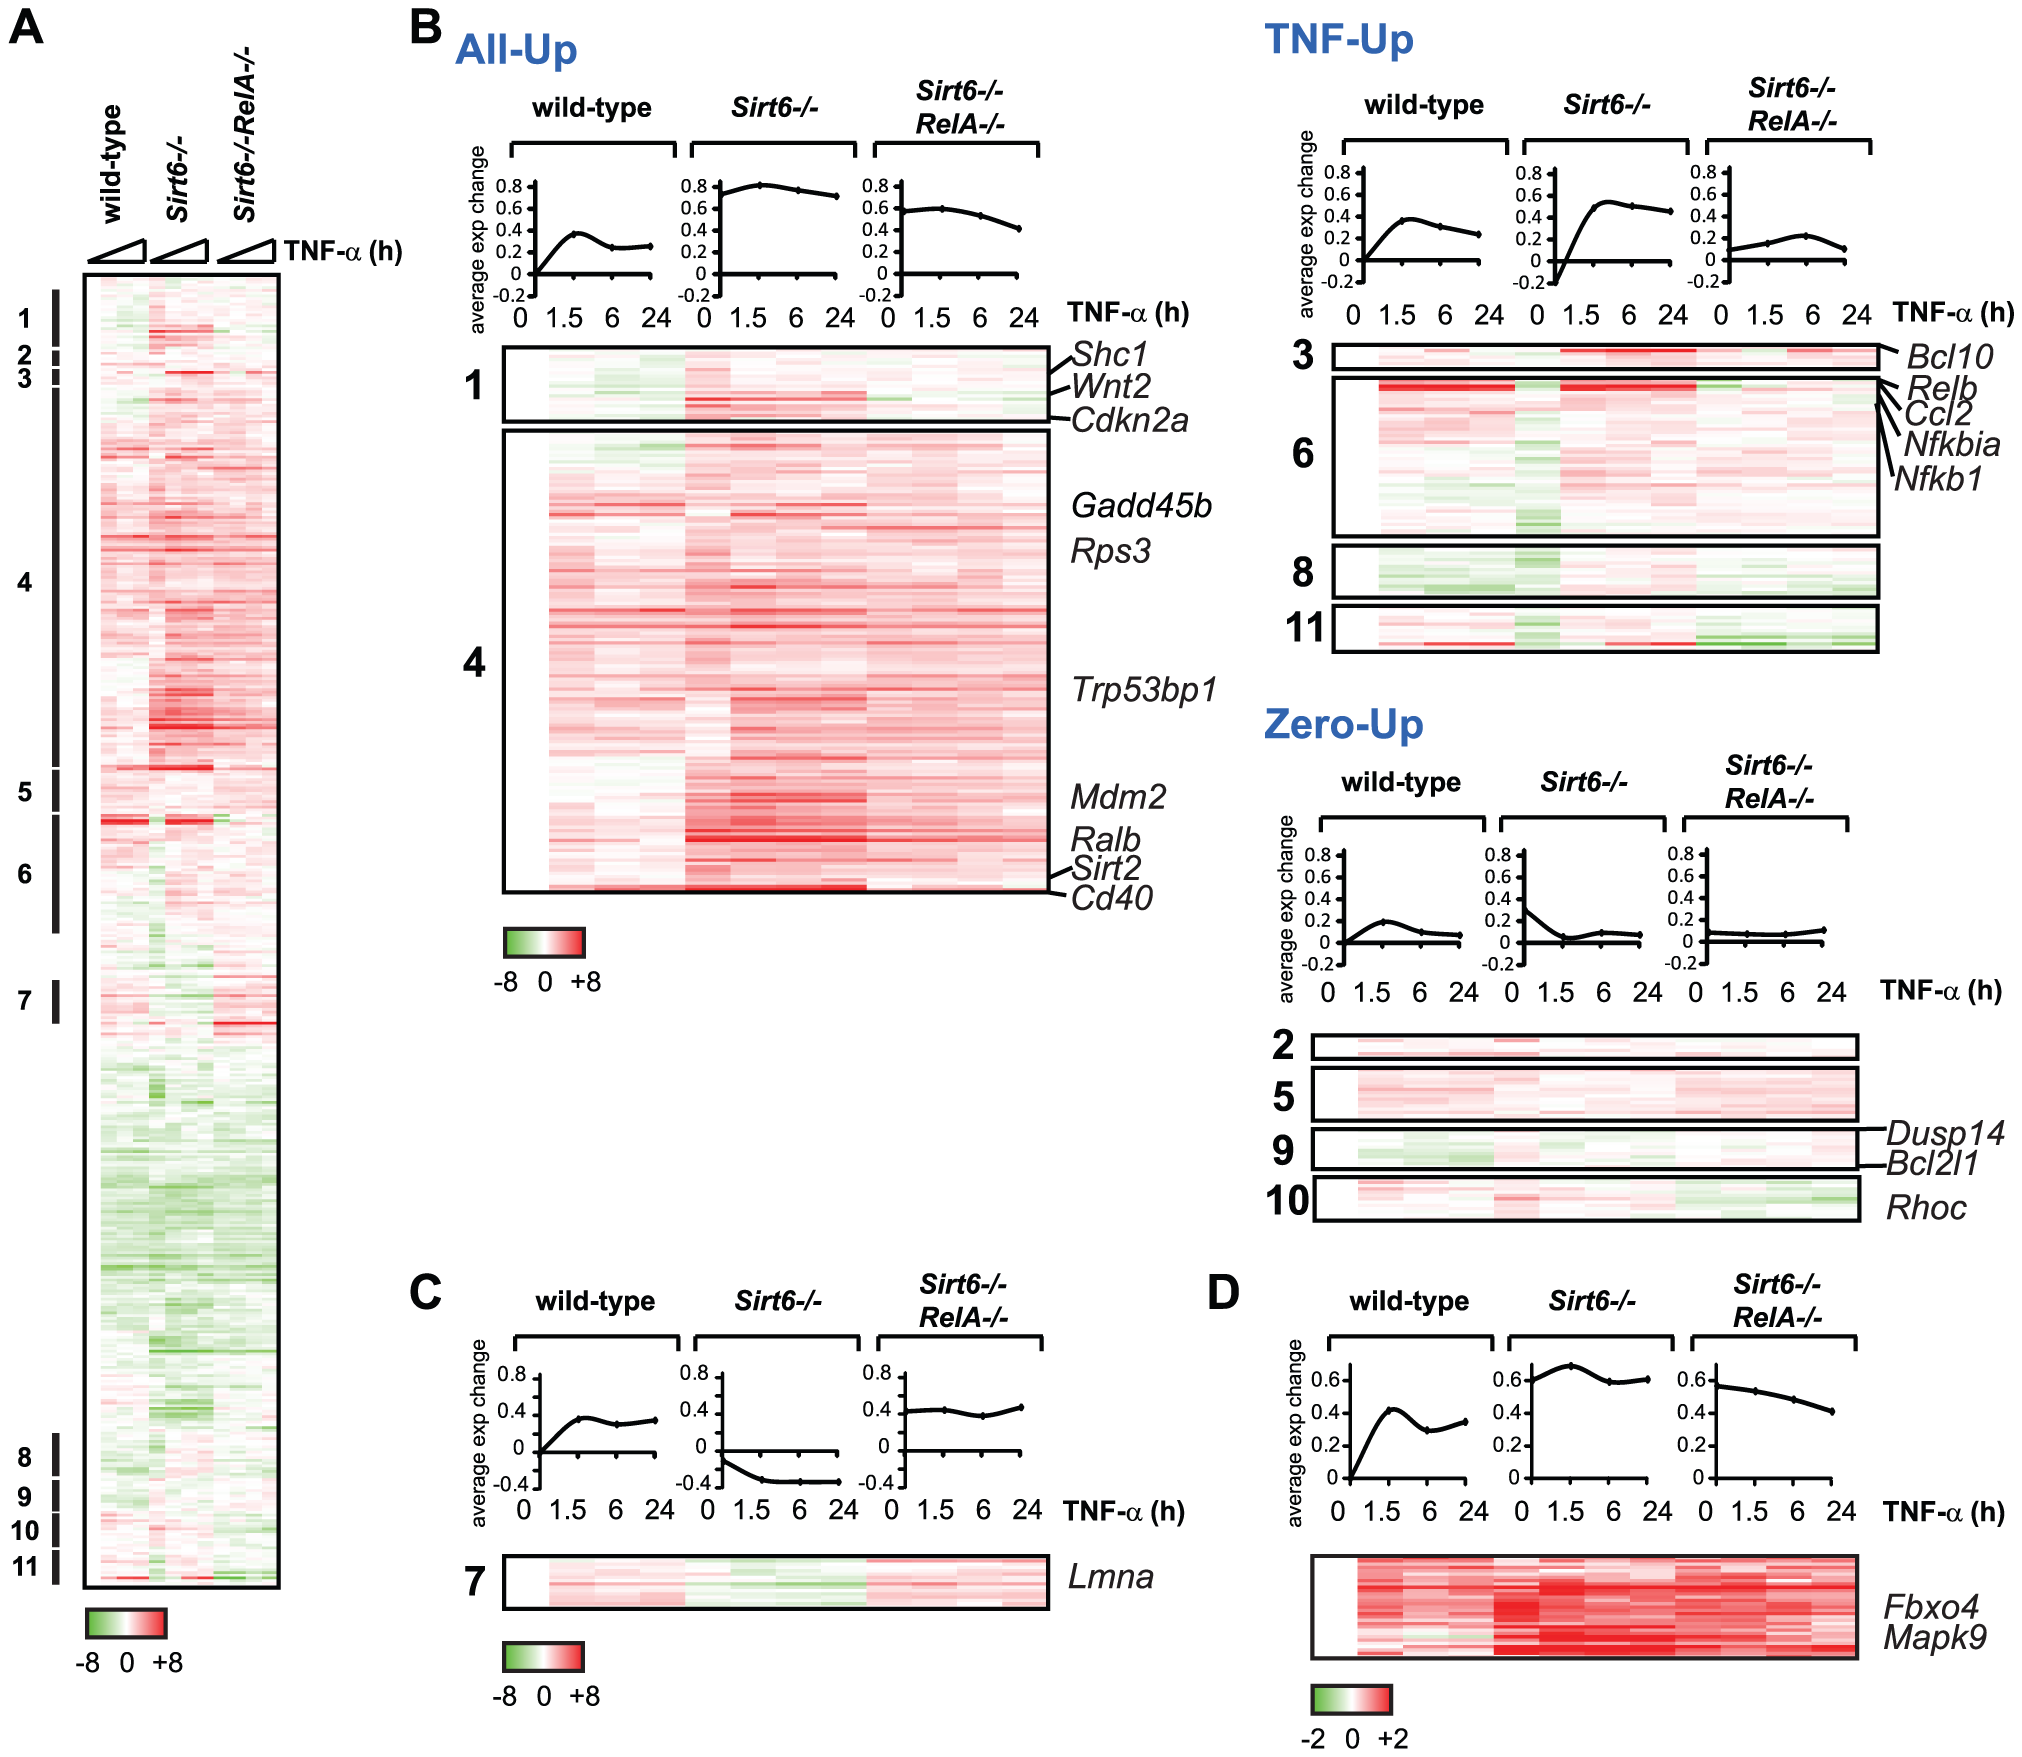 Gene expression consequences of interplay between RelA and Sirt6.